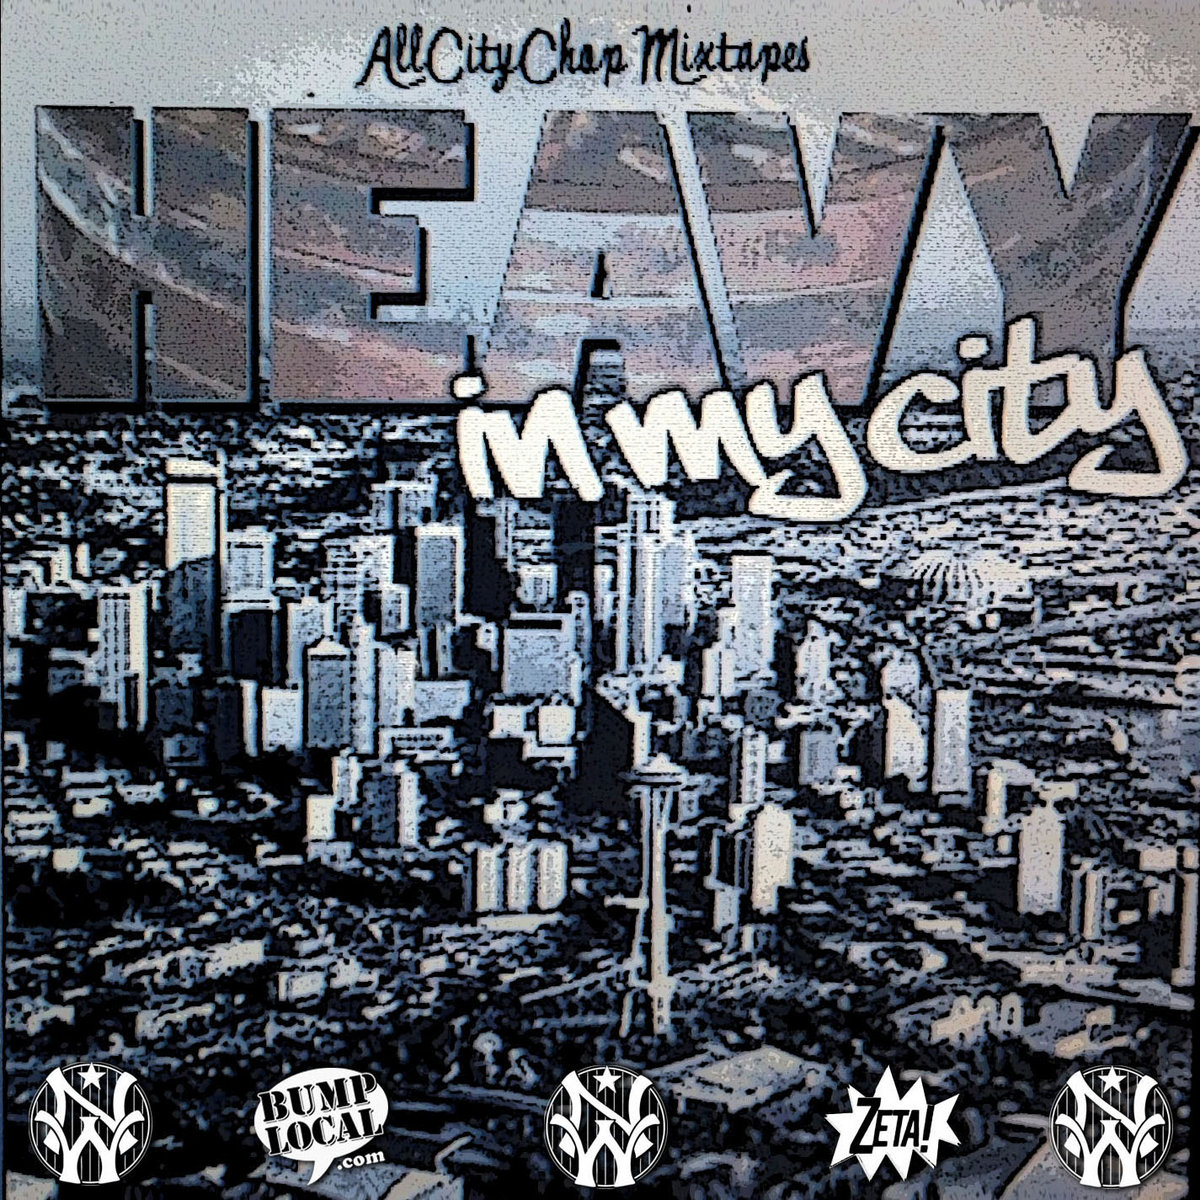 AllCityChop Mixtapes